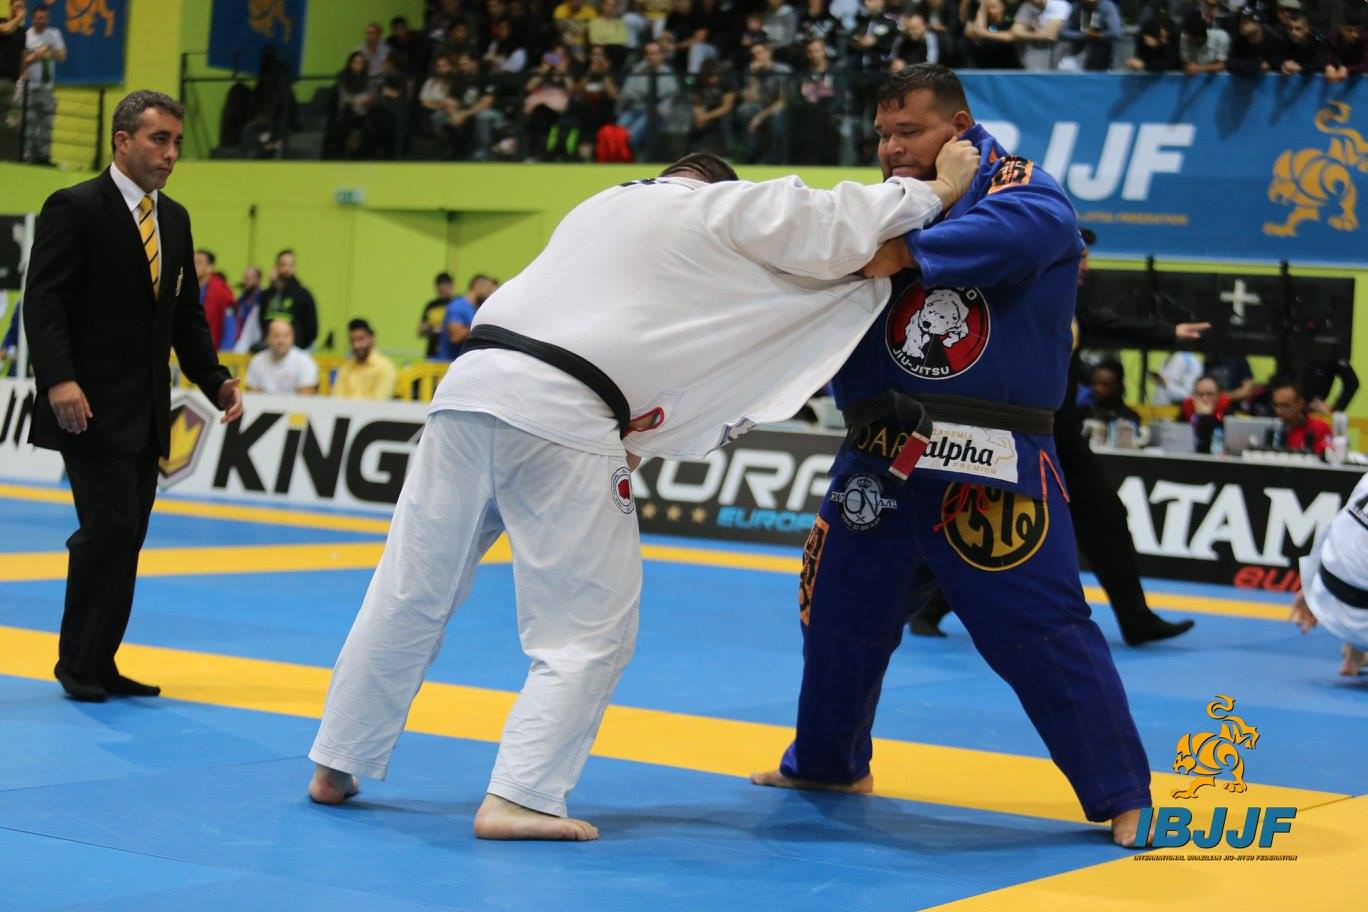 The Best Strategy For Facing Someone Bigger And Taller Than You In BJJ